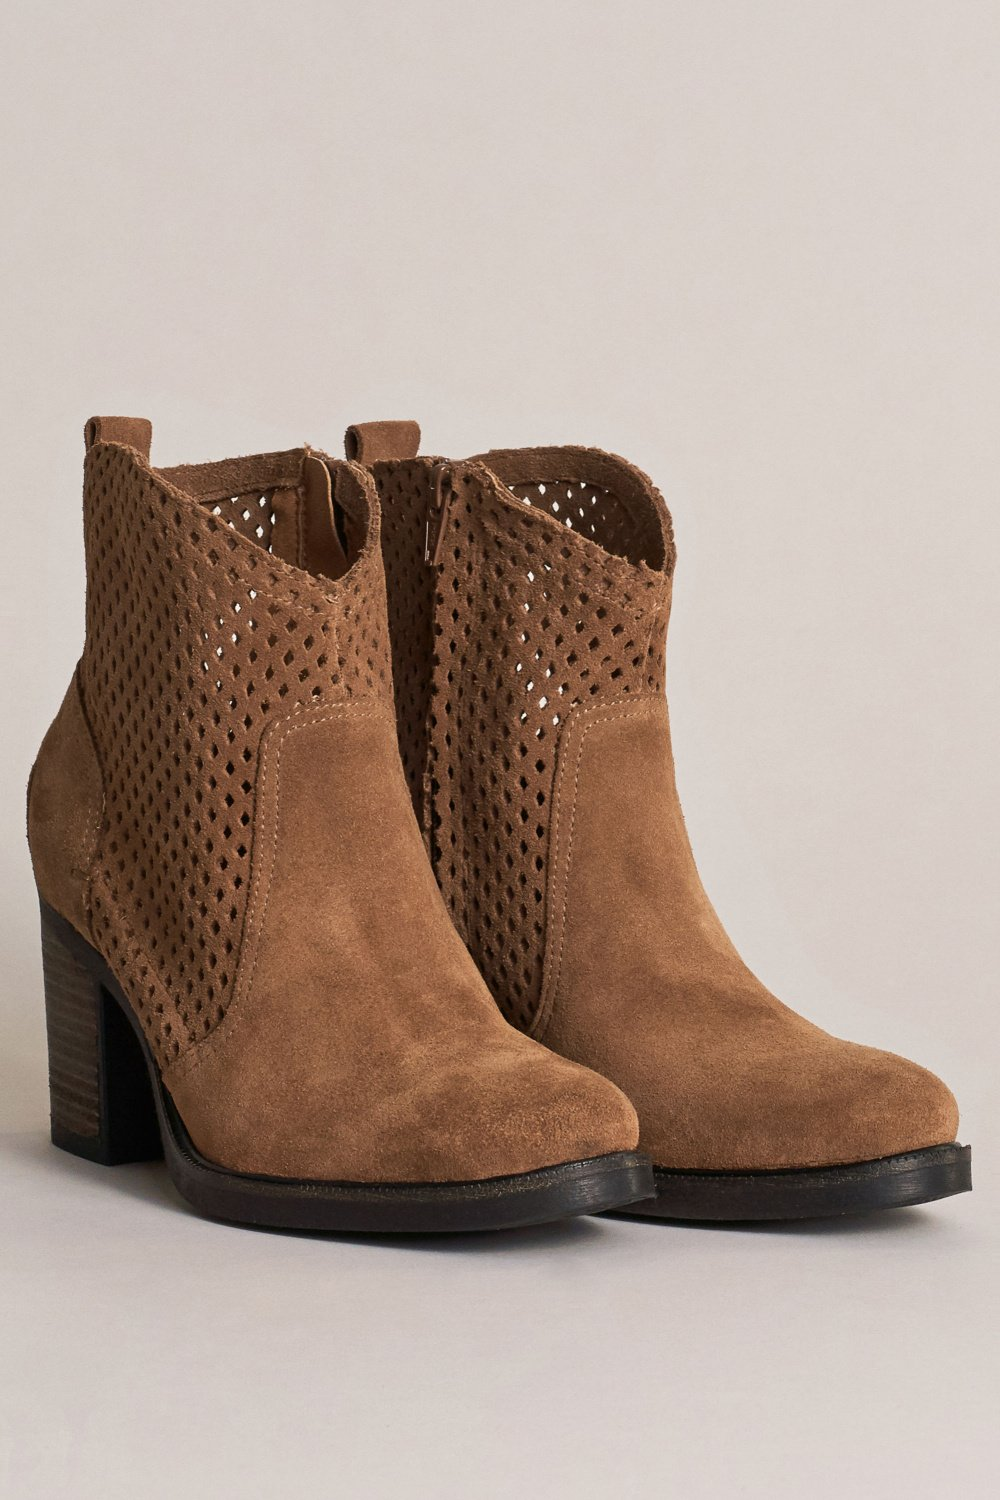 Perforated suede boot with a classic heel - Salsa